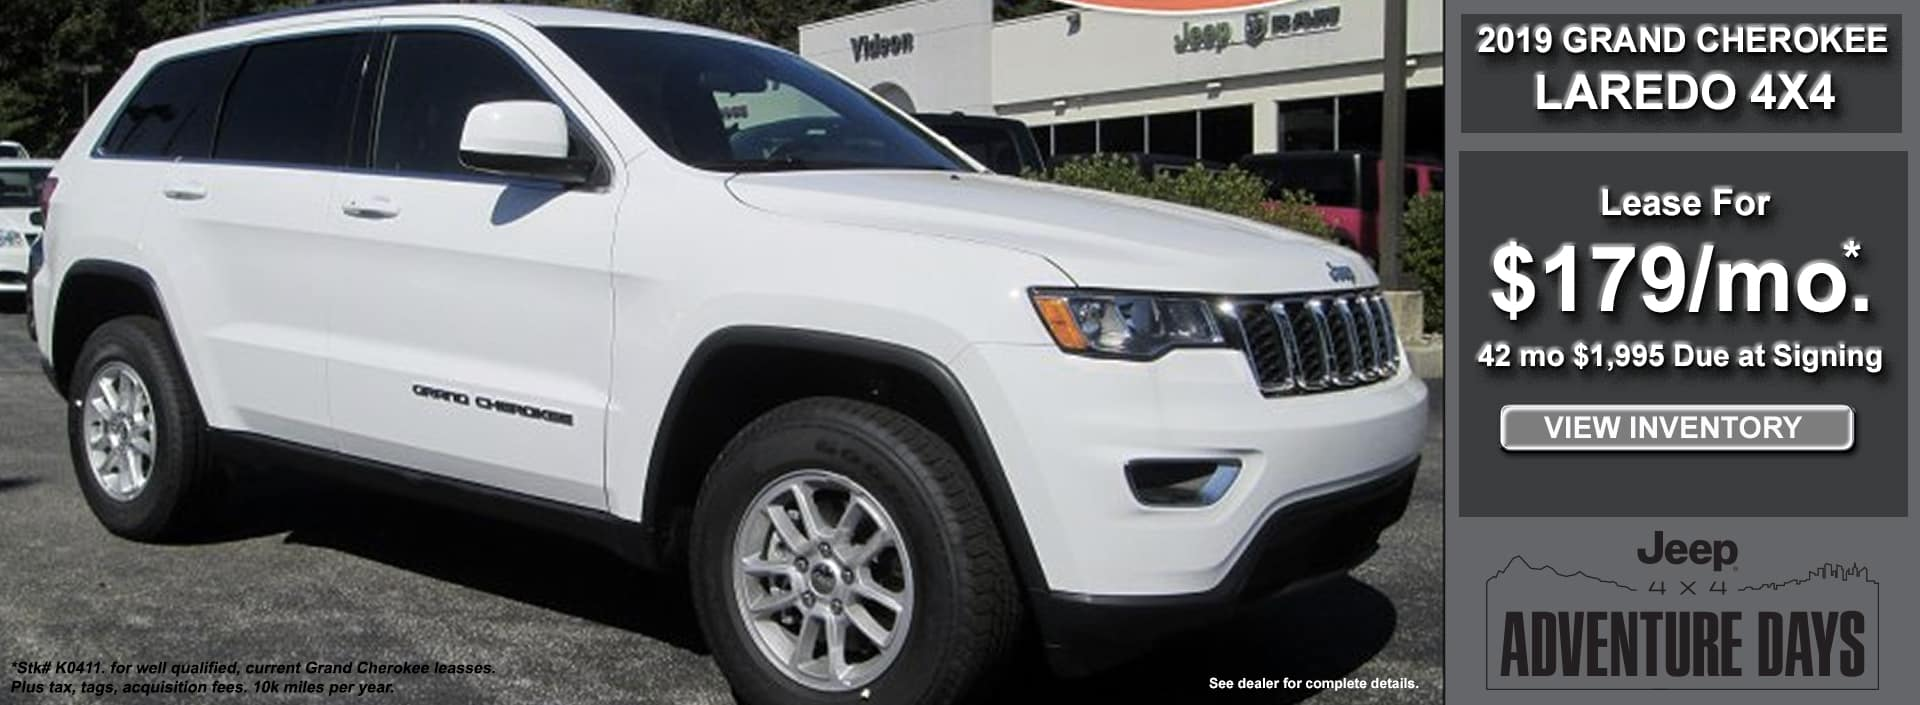 Grand Cherokee Laredo Lease October 2019